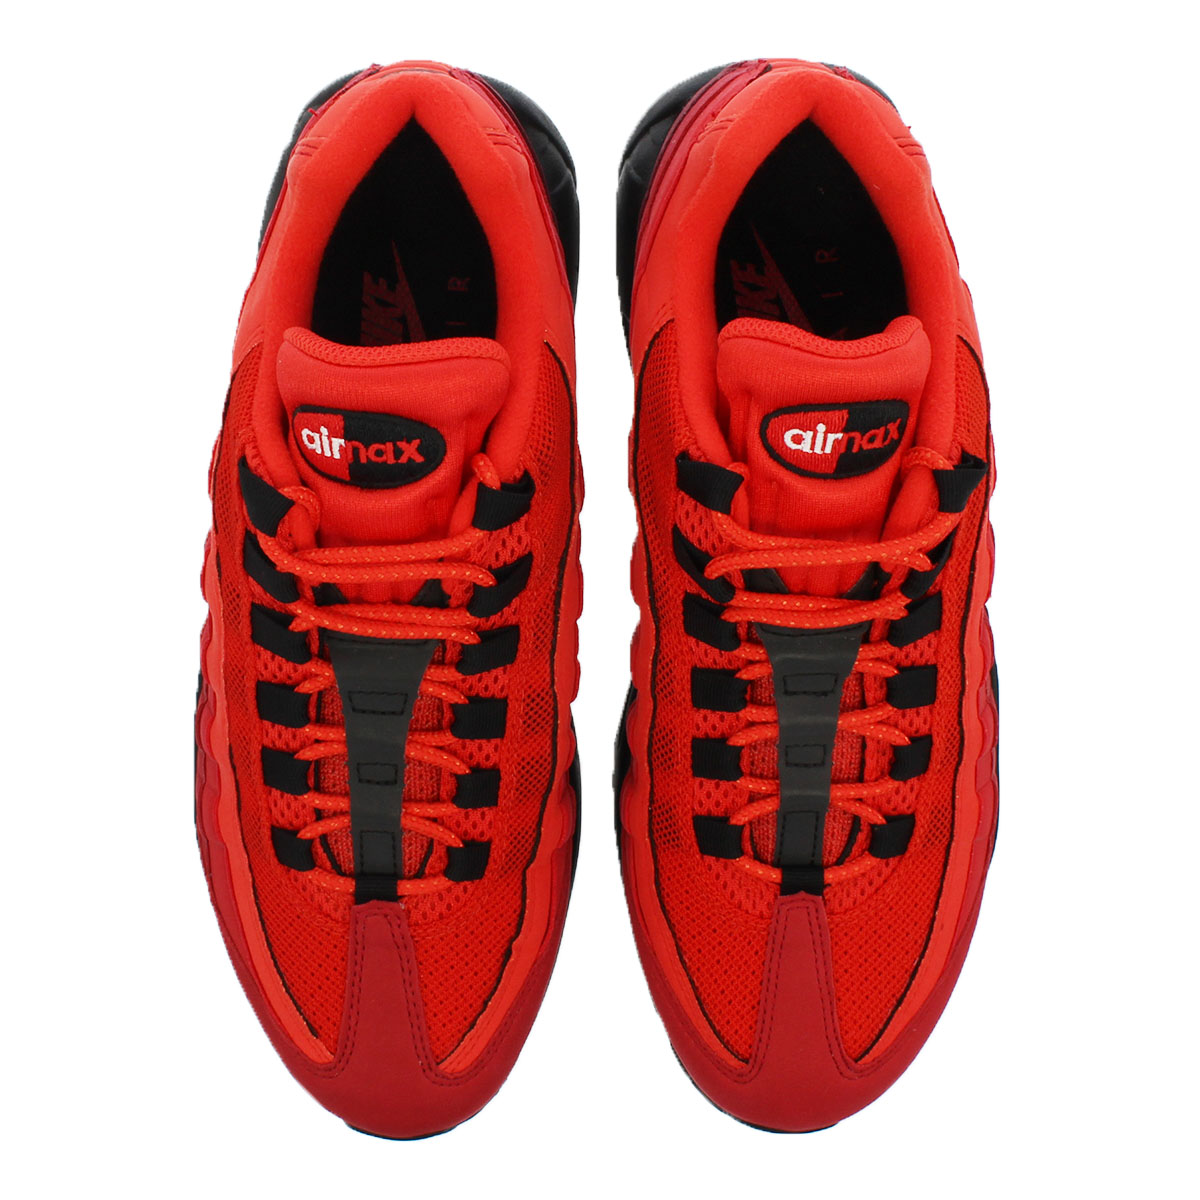 sale retailer 00519 34893 NIKE AIR MAX 95 OG Kie Ney AMAX 95 OG HABANERO RED WHITE UNIVERSITY RED GYM  RED TEAM RED BLACK at2865-600